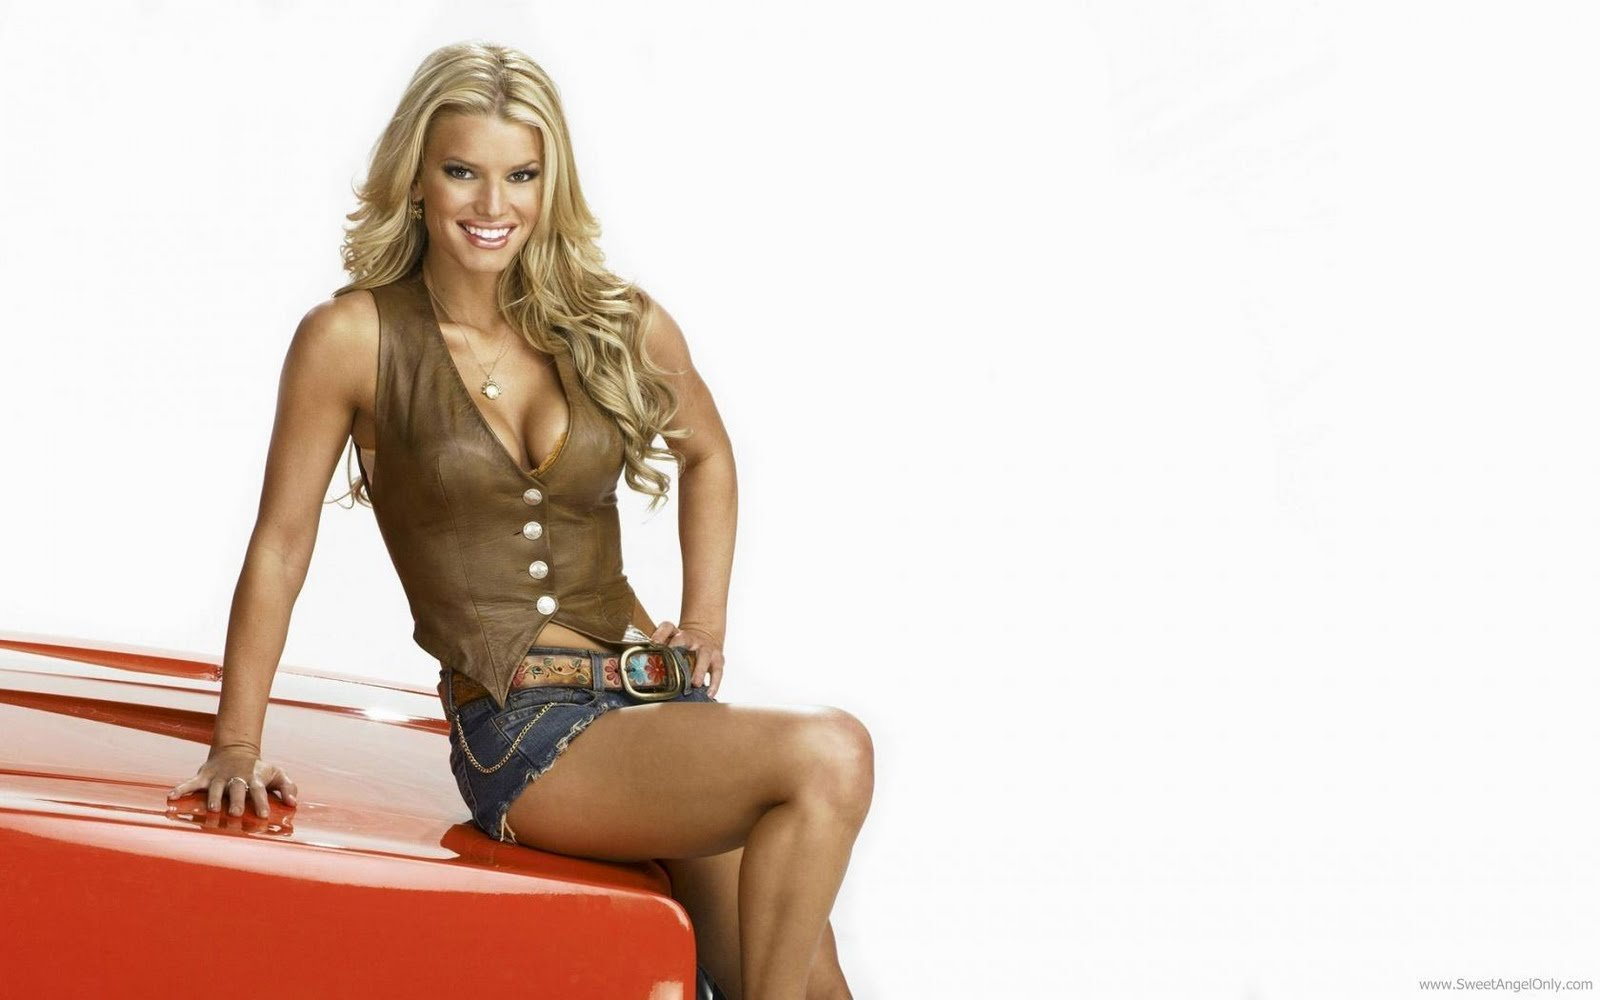 American Singer Jessica Simpson Wallpaper HD 1600x1000